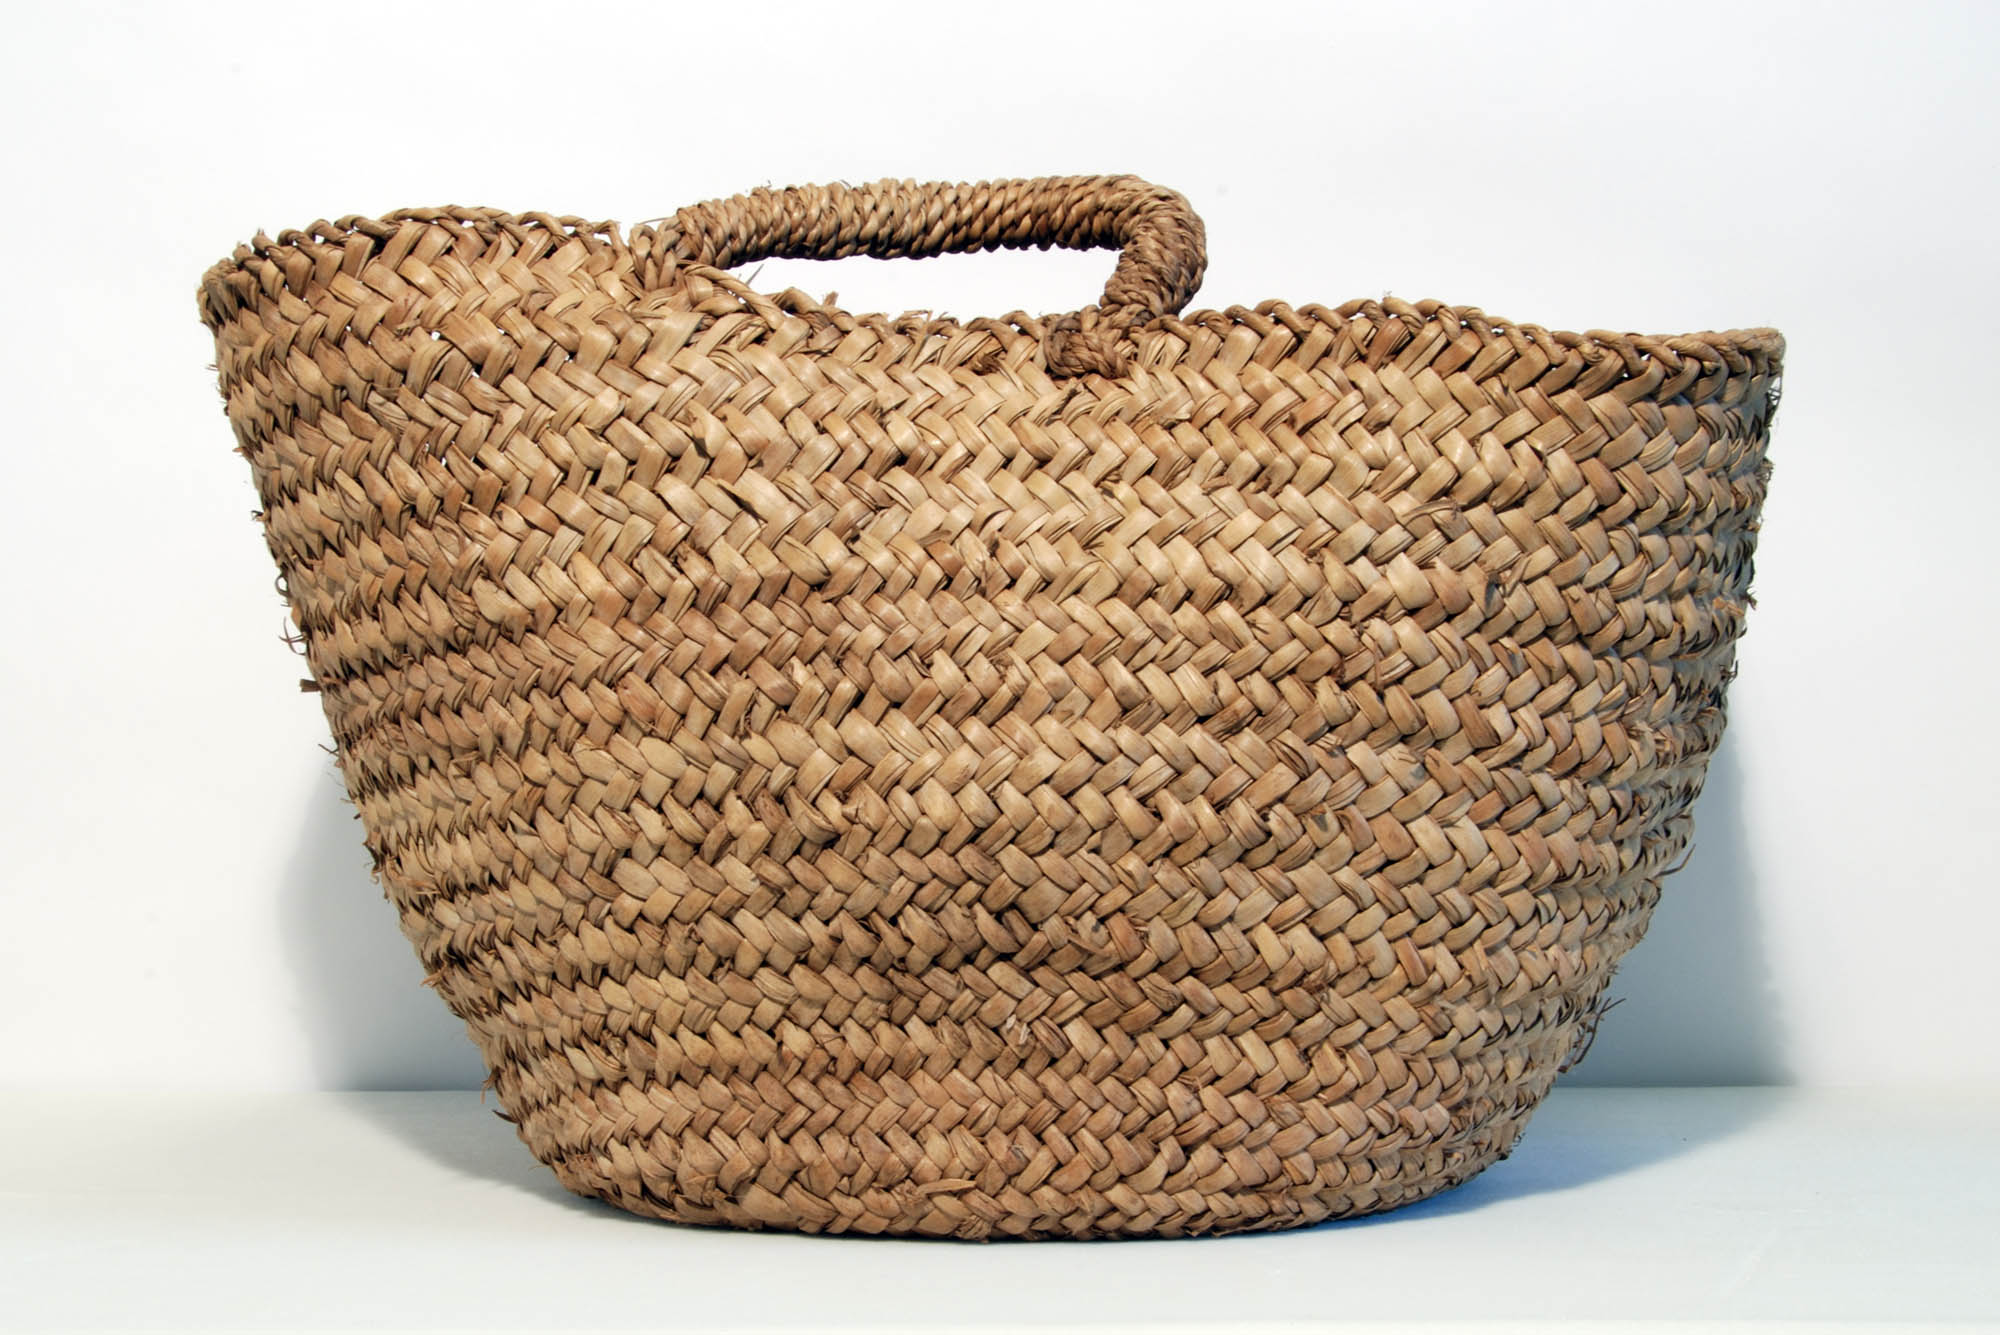 Straw vegetable basket